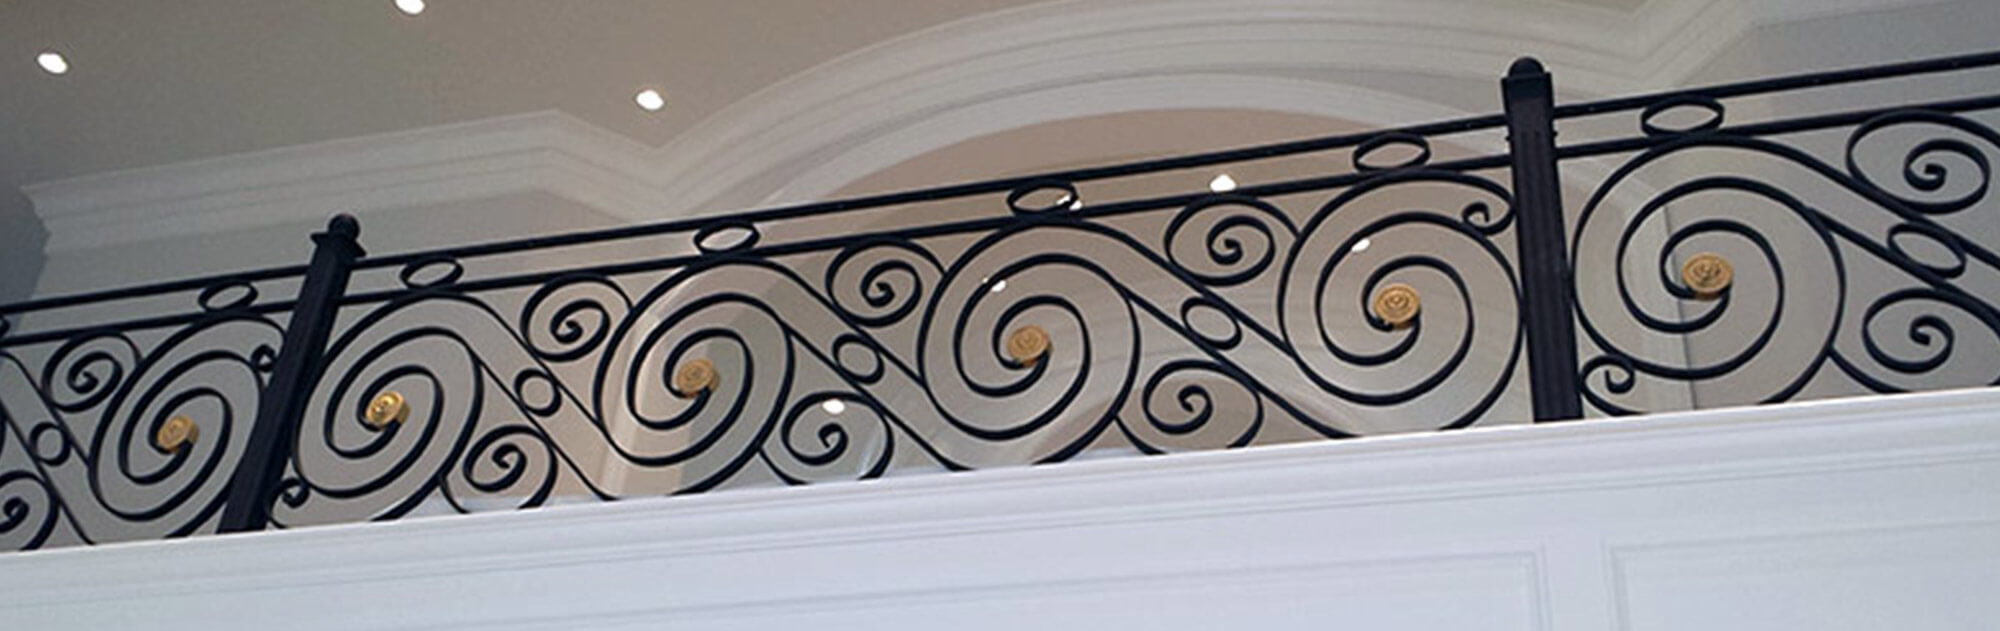 Custom wrought iron balcony railing featuring scroll balusters with gold accents